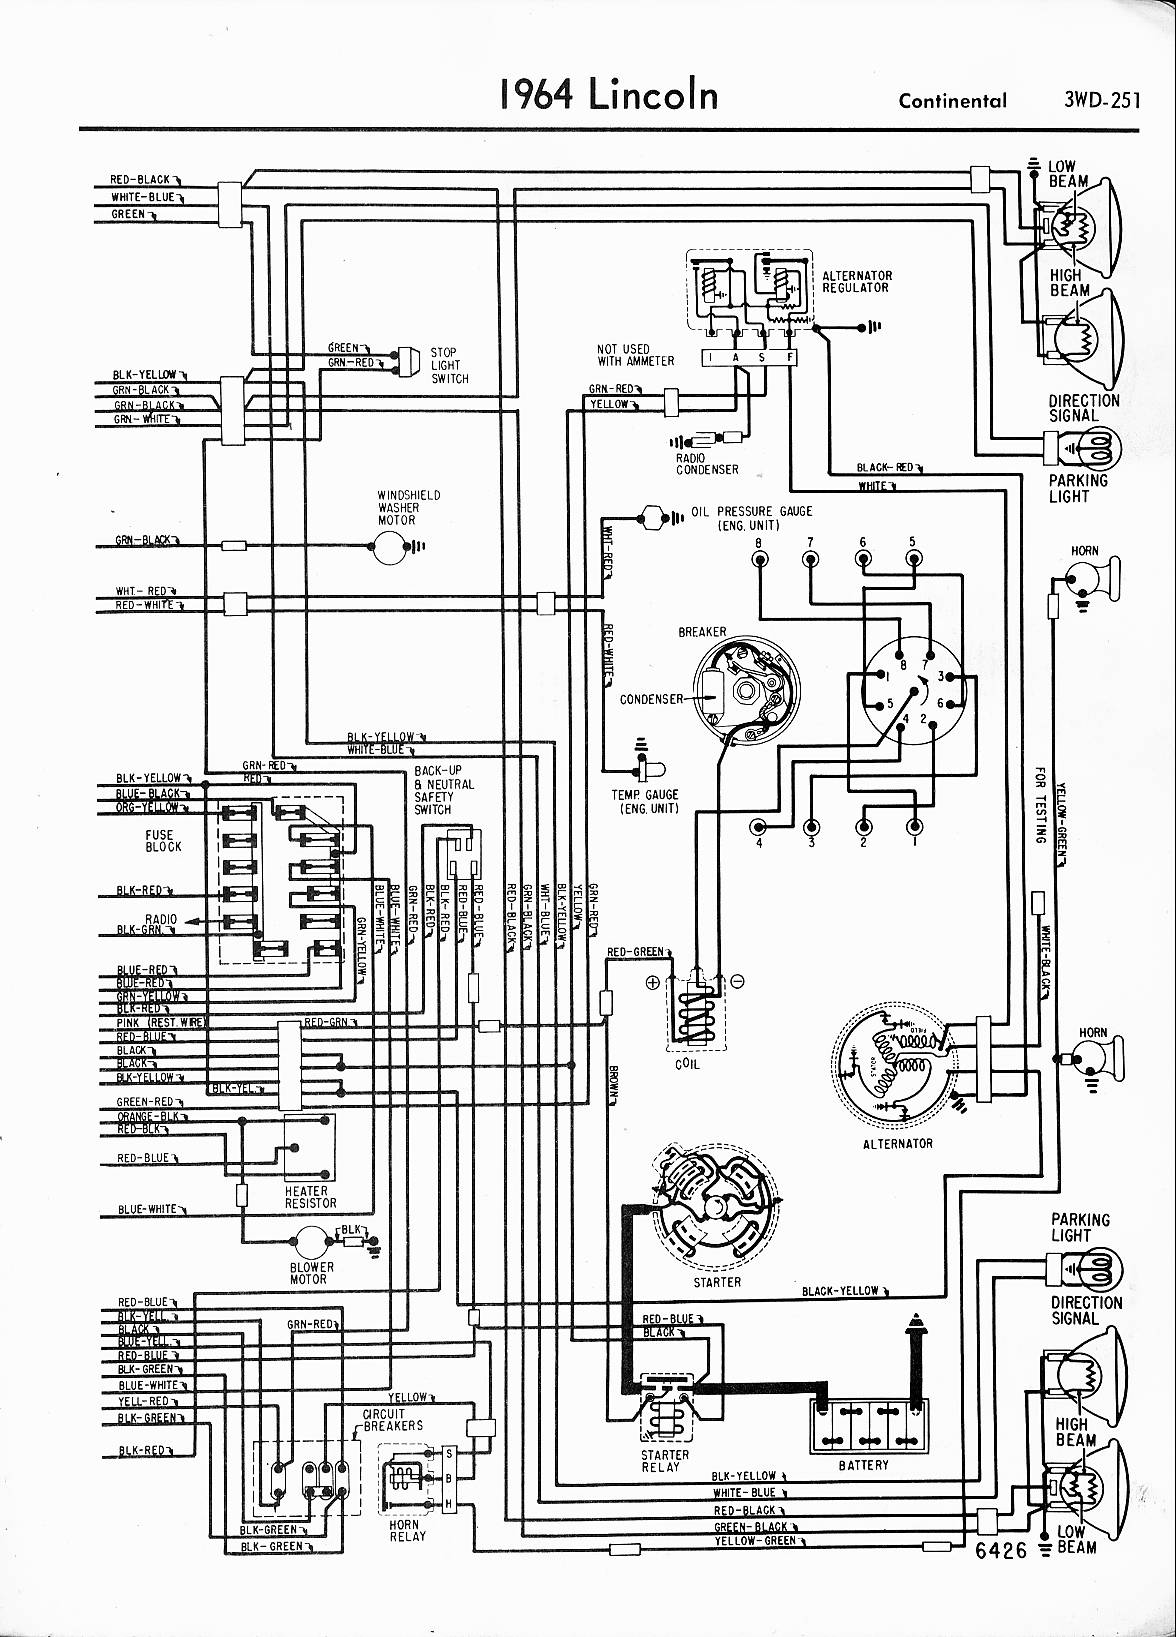 67 imperial window wiring diagram electronic wiring diagrams 59 imperial  lebaron 1967 lincoln wiring diagram just